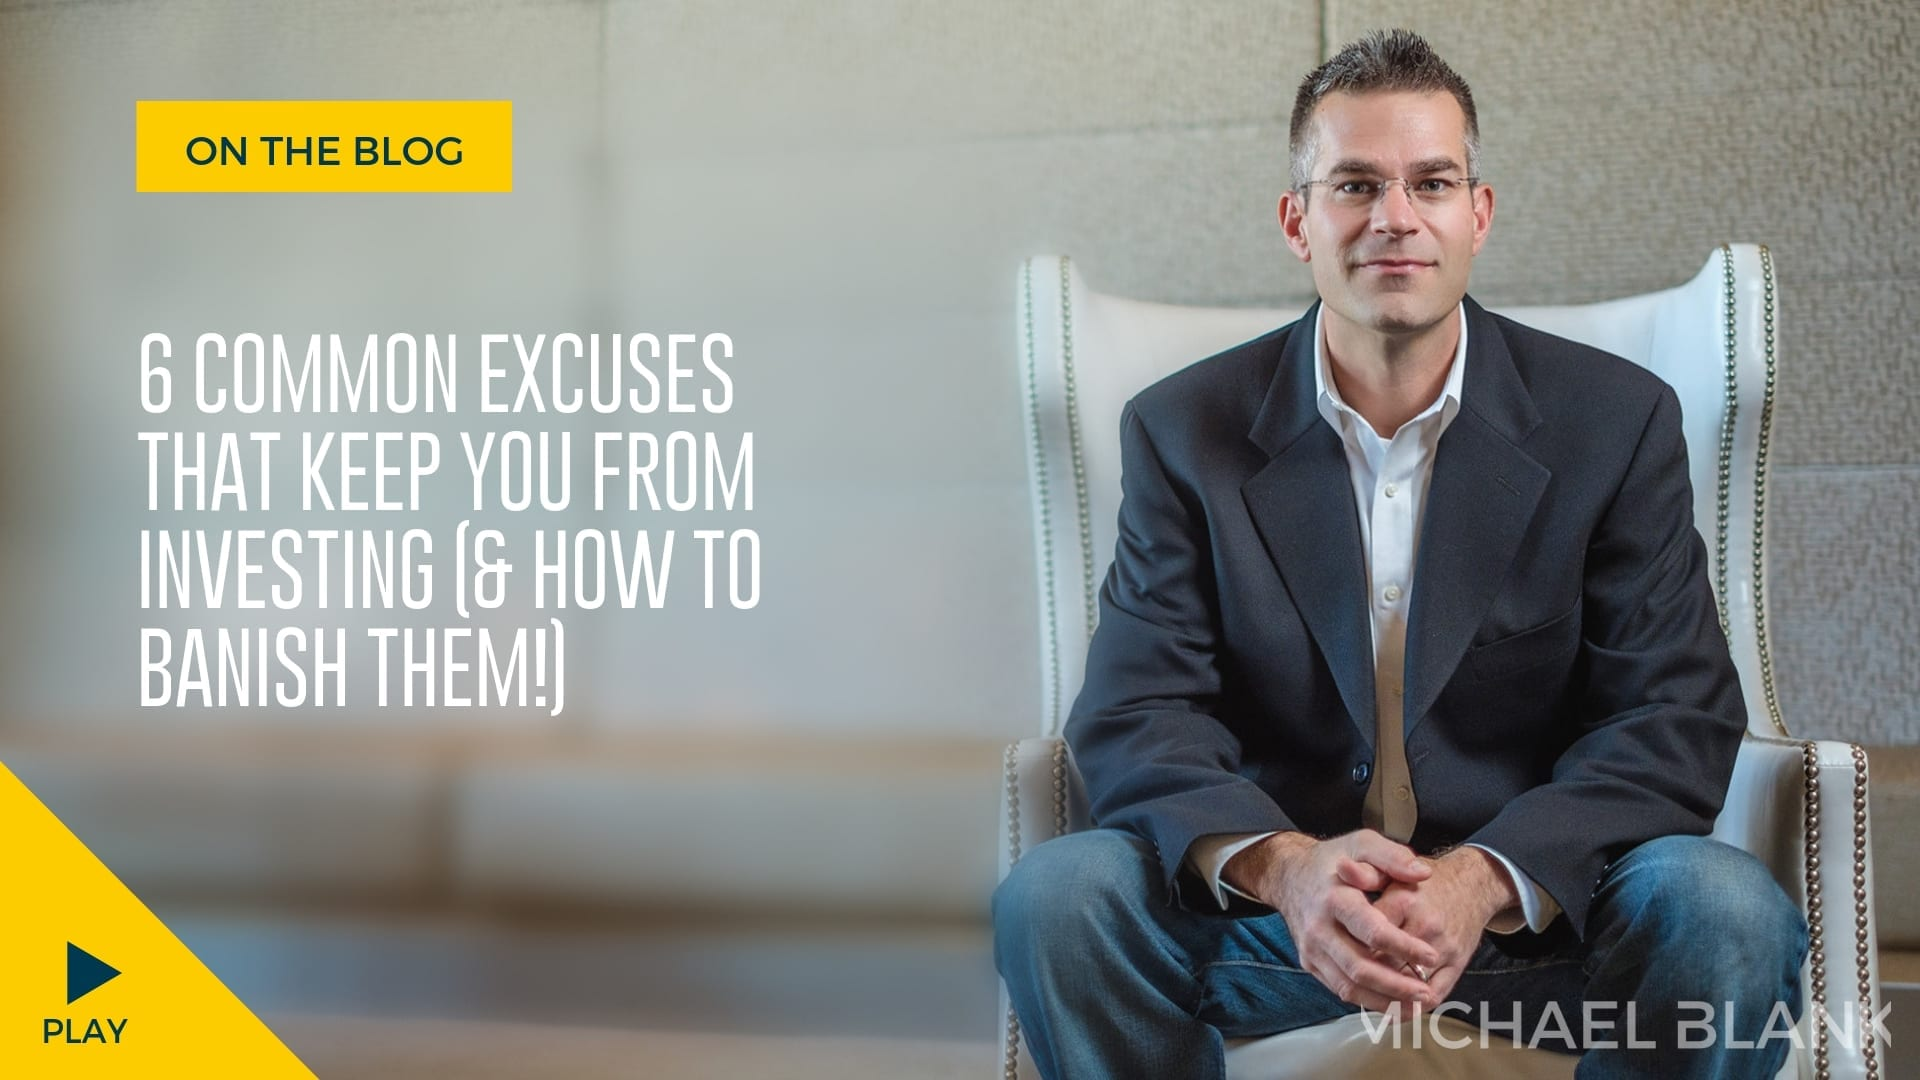 6 Common Excuses That Keep You From Investing (& How to Banish Them!)